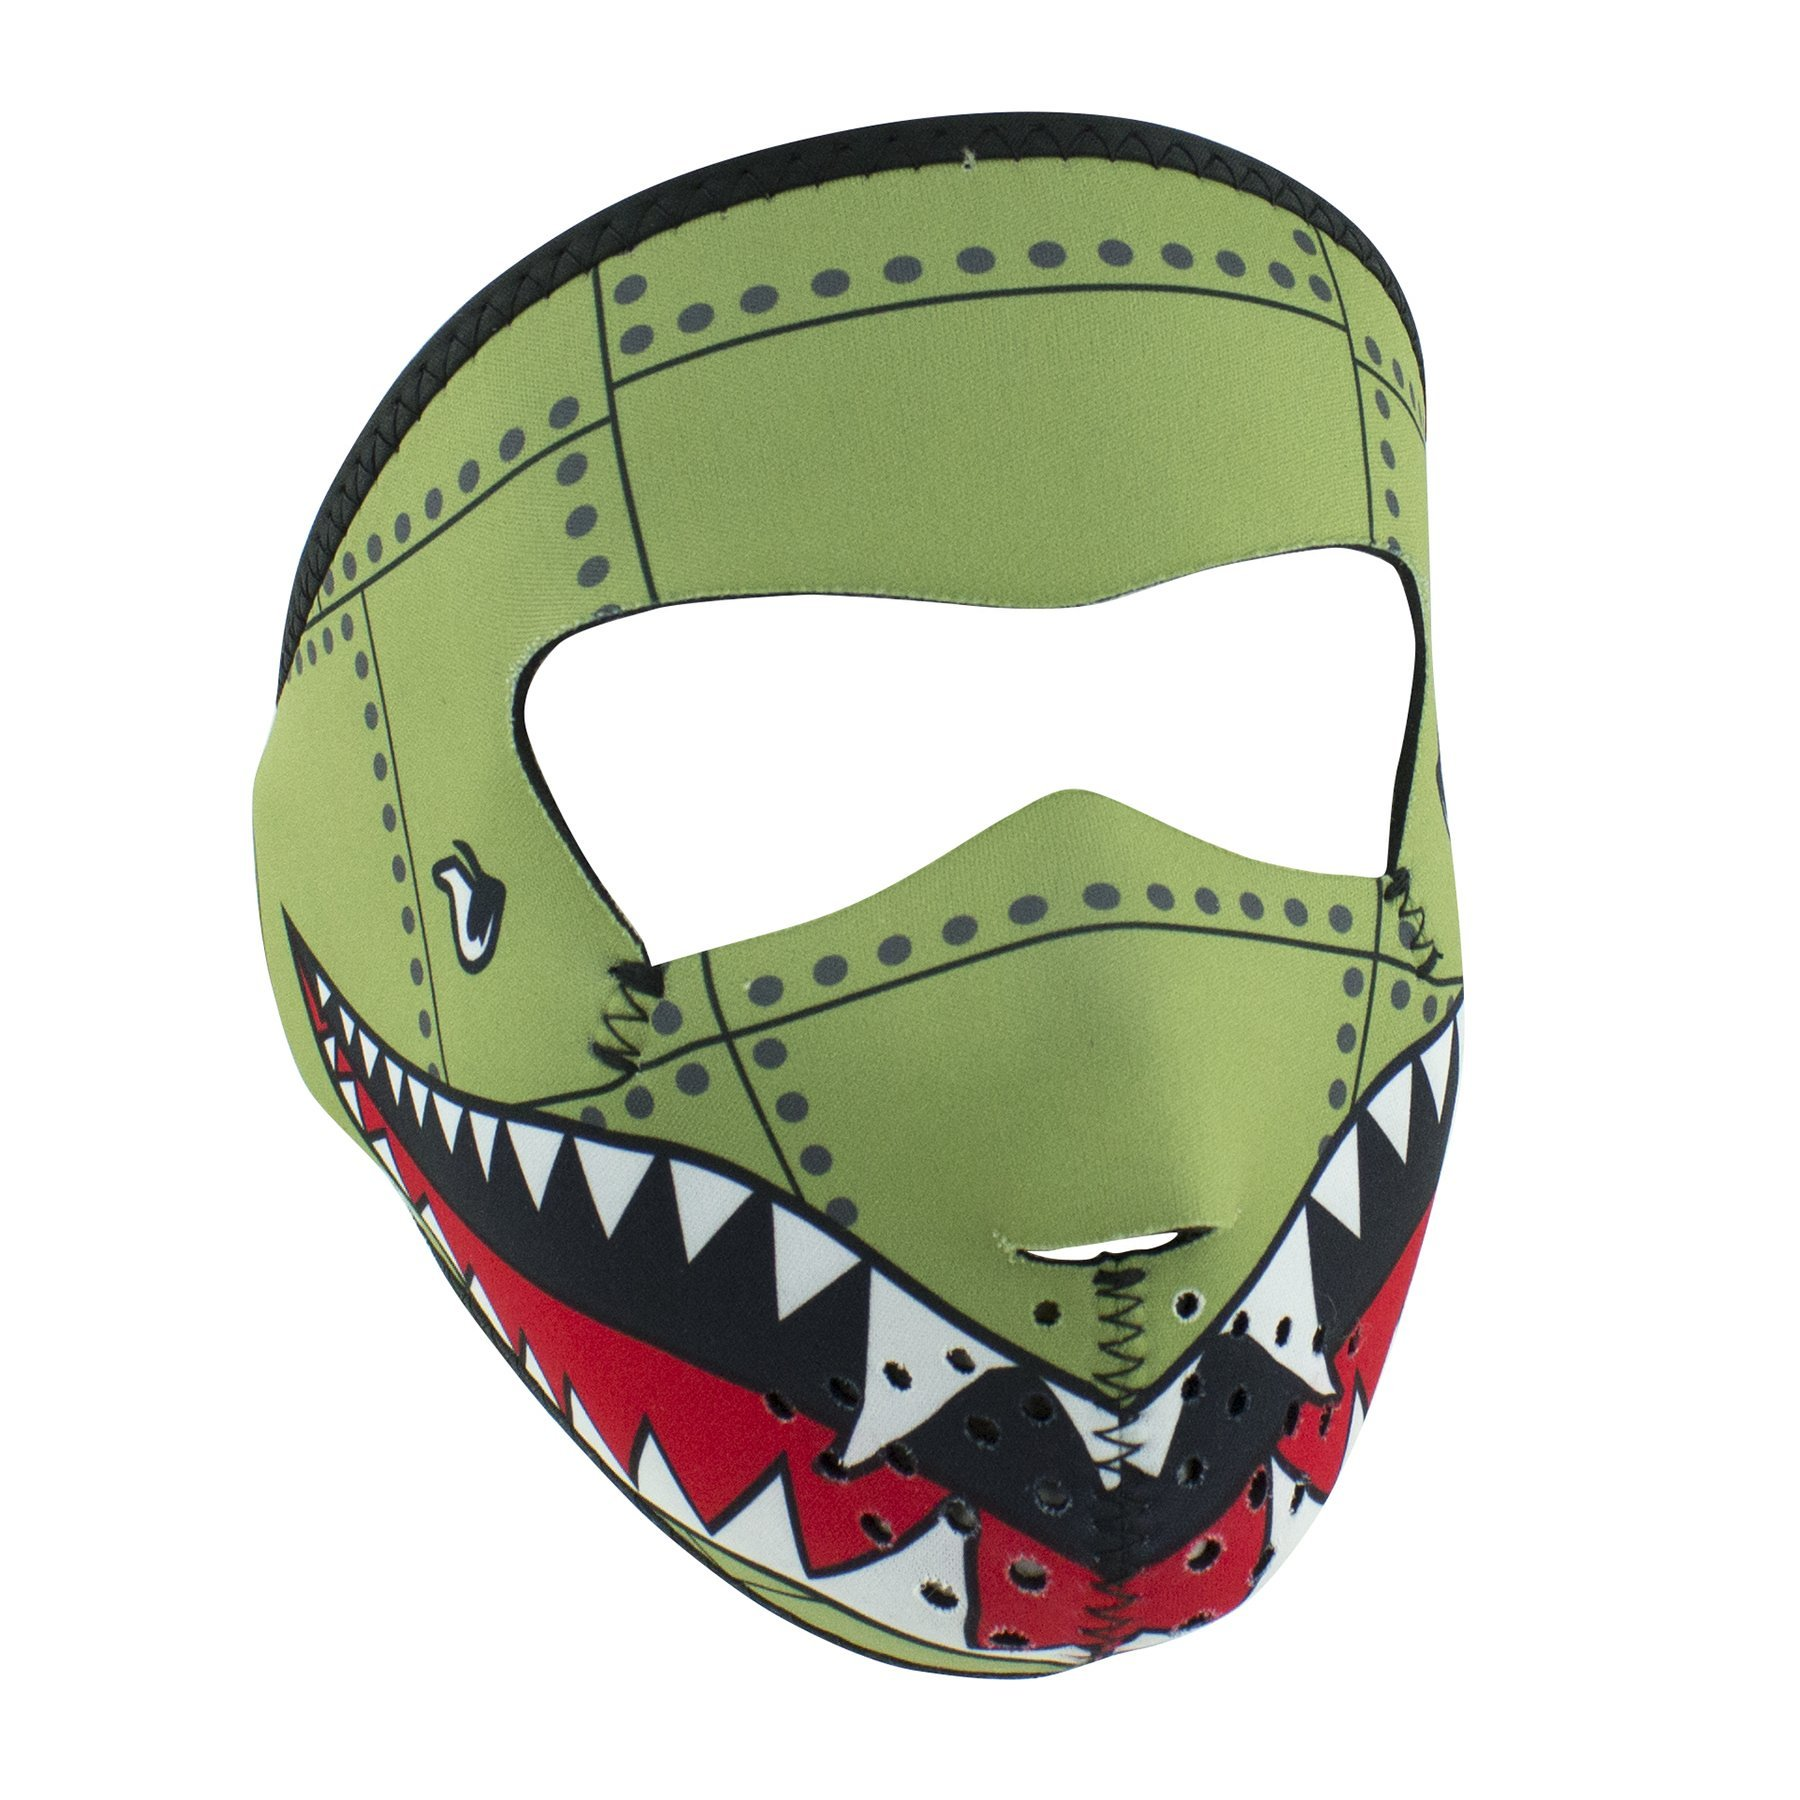 ZANheadgear WNFMS010 Neoprene Full Face Mask, Small, Bomber